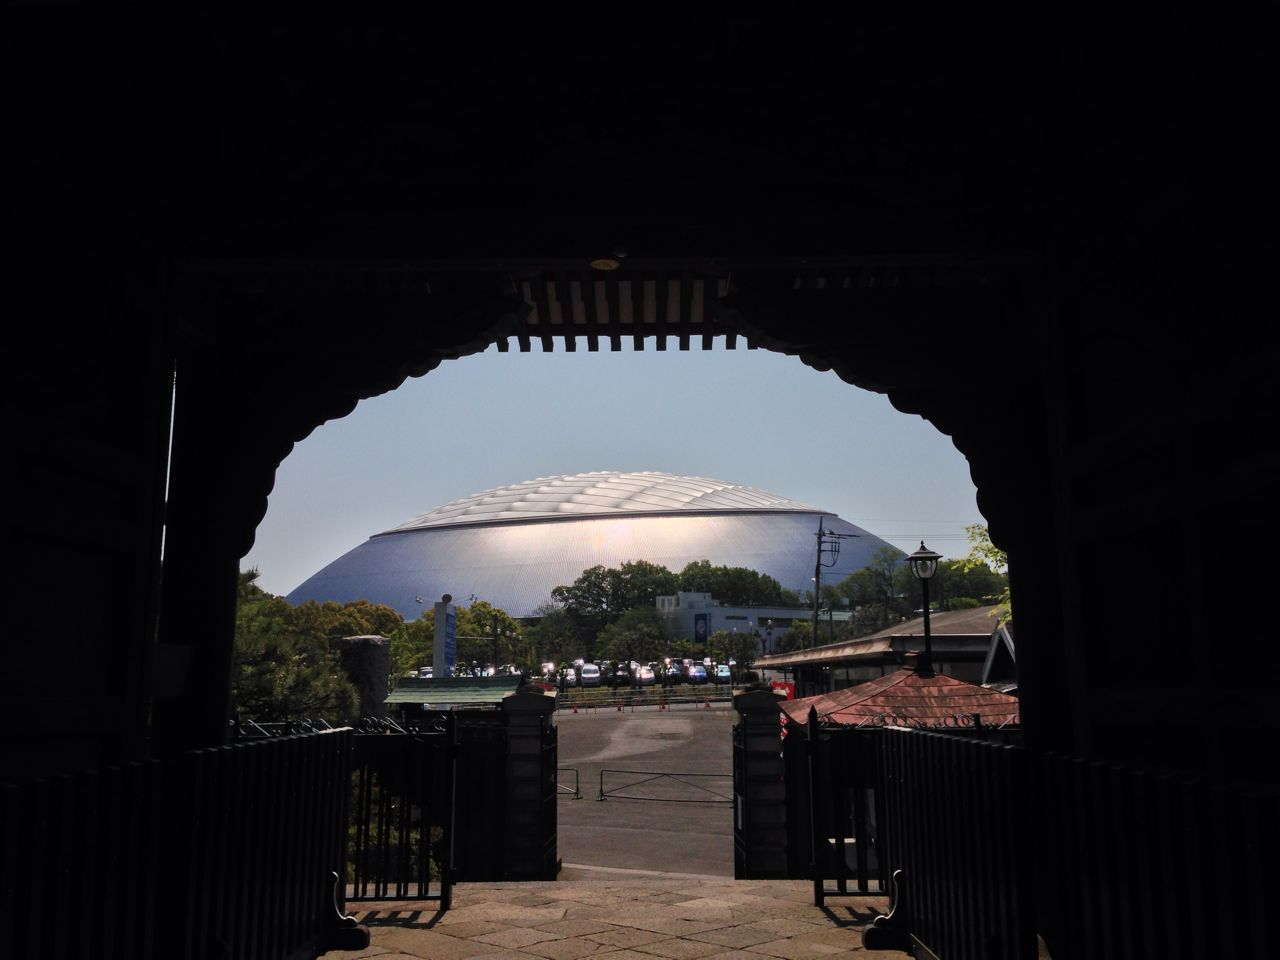 Seibu Dome from the front of the gate